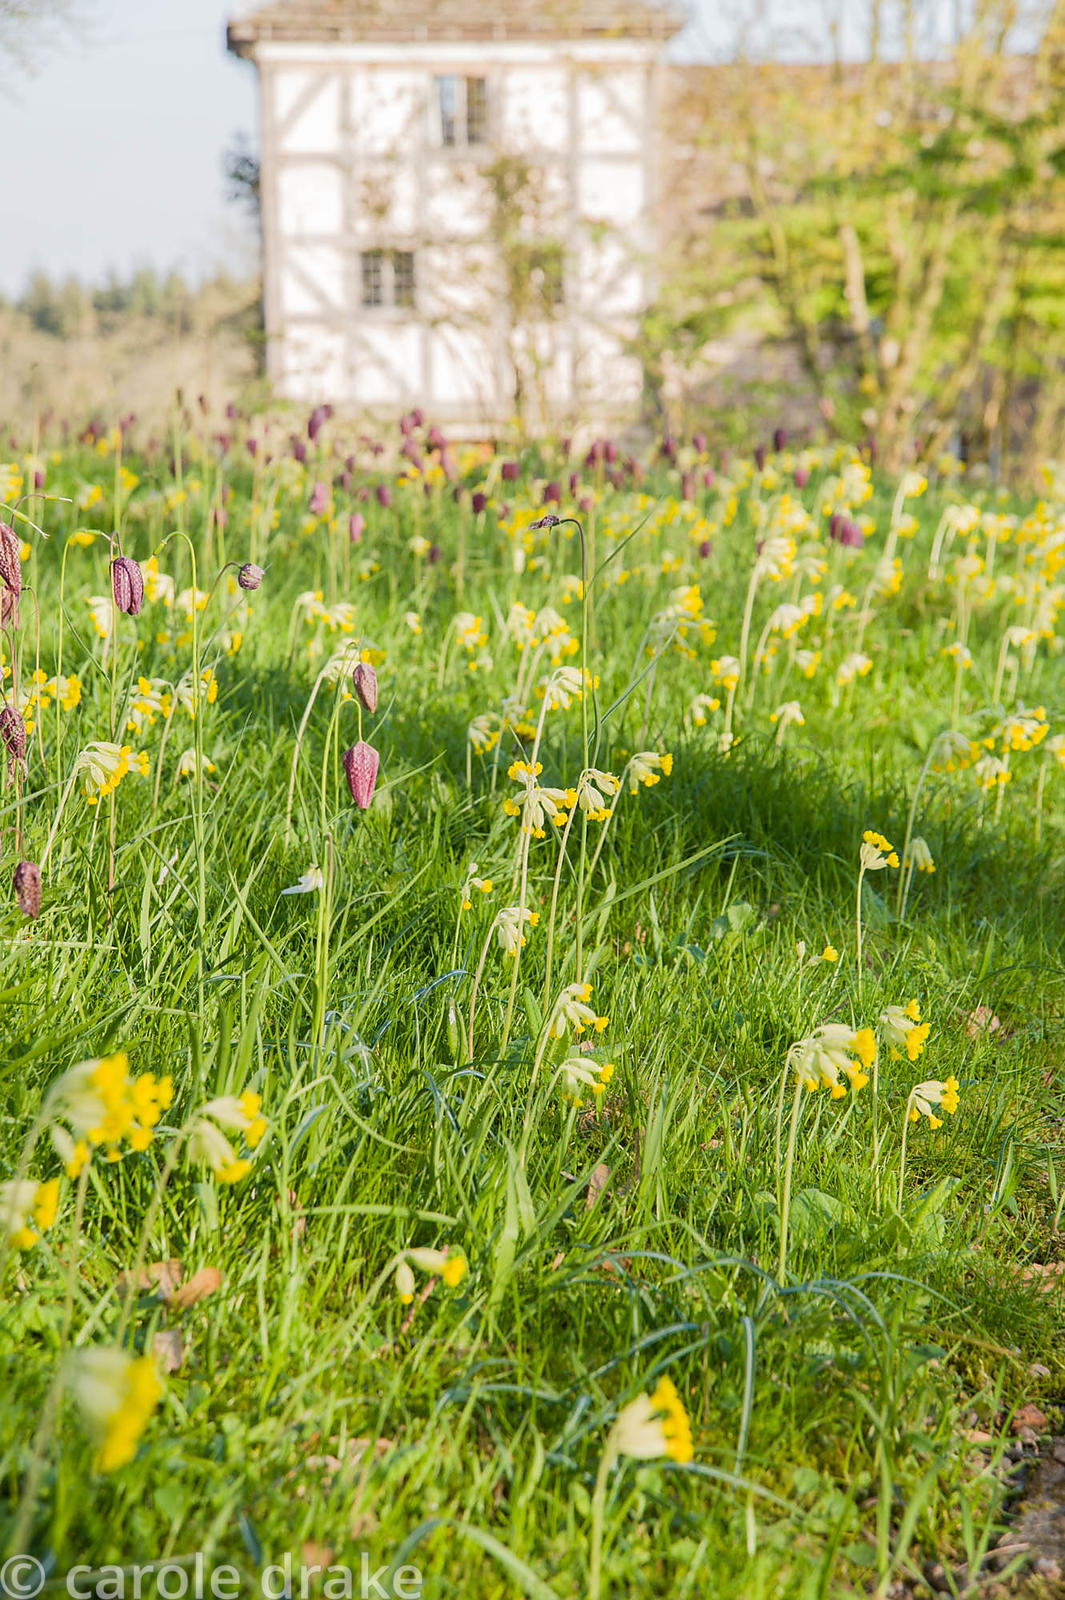 Cowslips and snakeshead fritillaries mingle in grass around the drive at Brilley Court Farm, Whitney-on-Wye, Herefordshire, UK